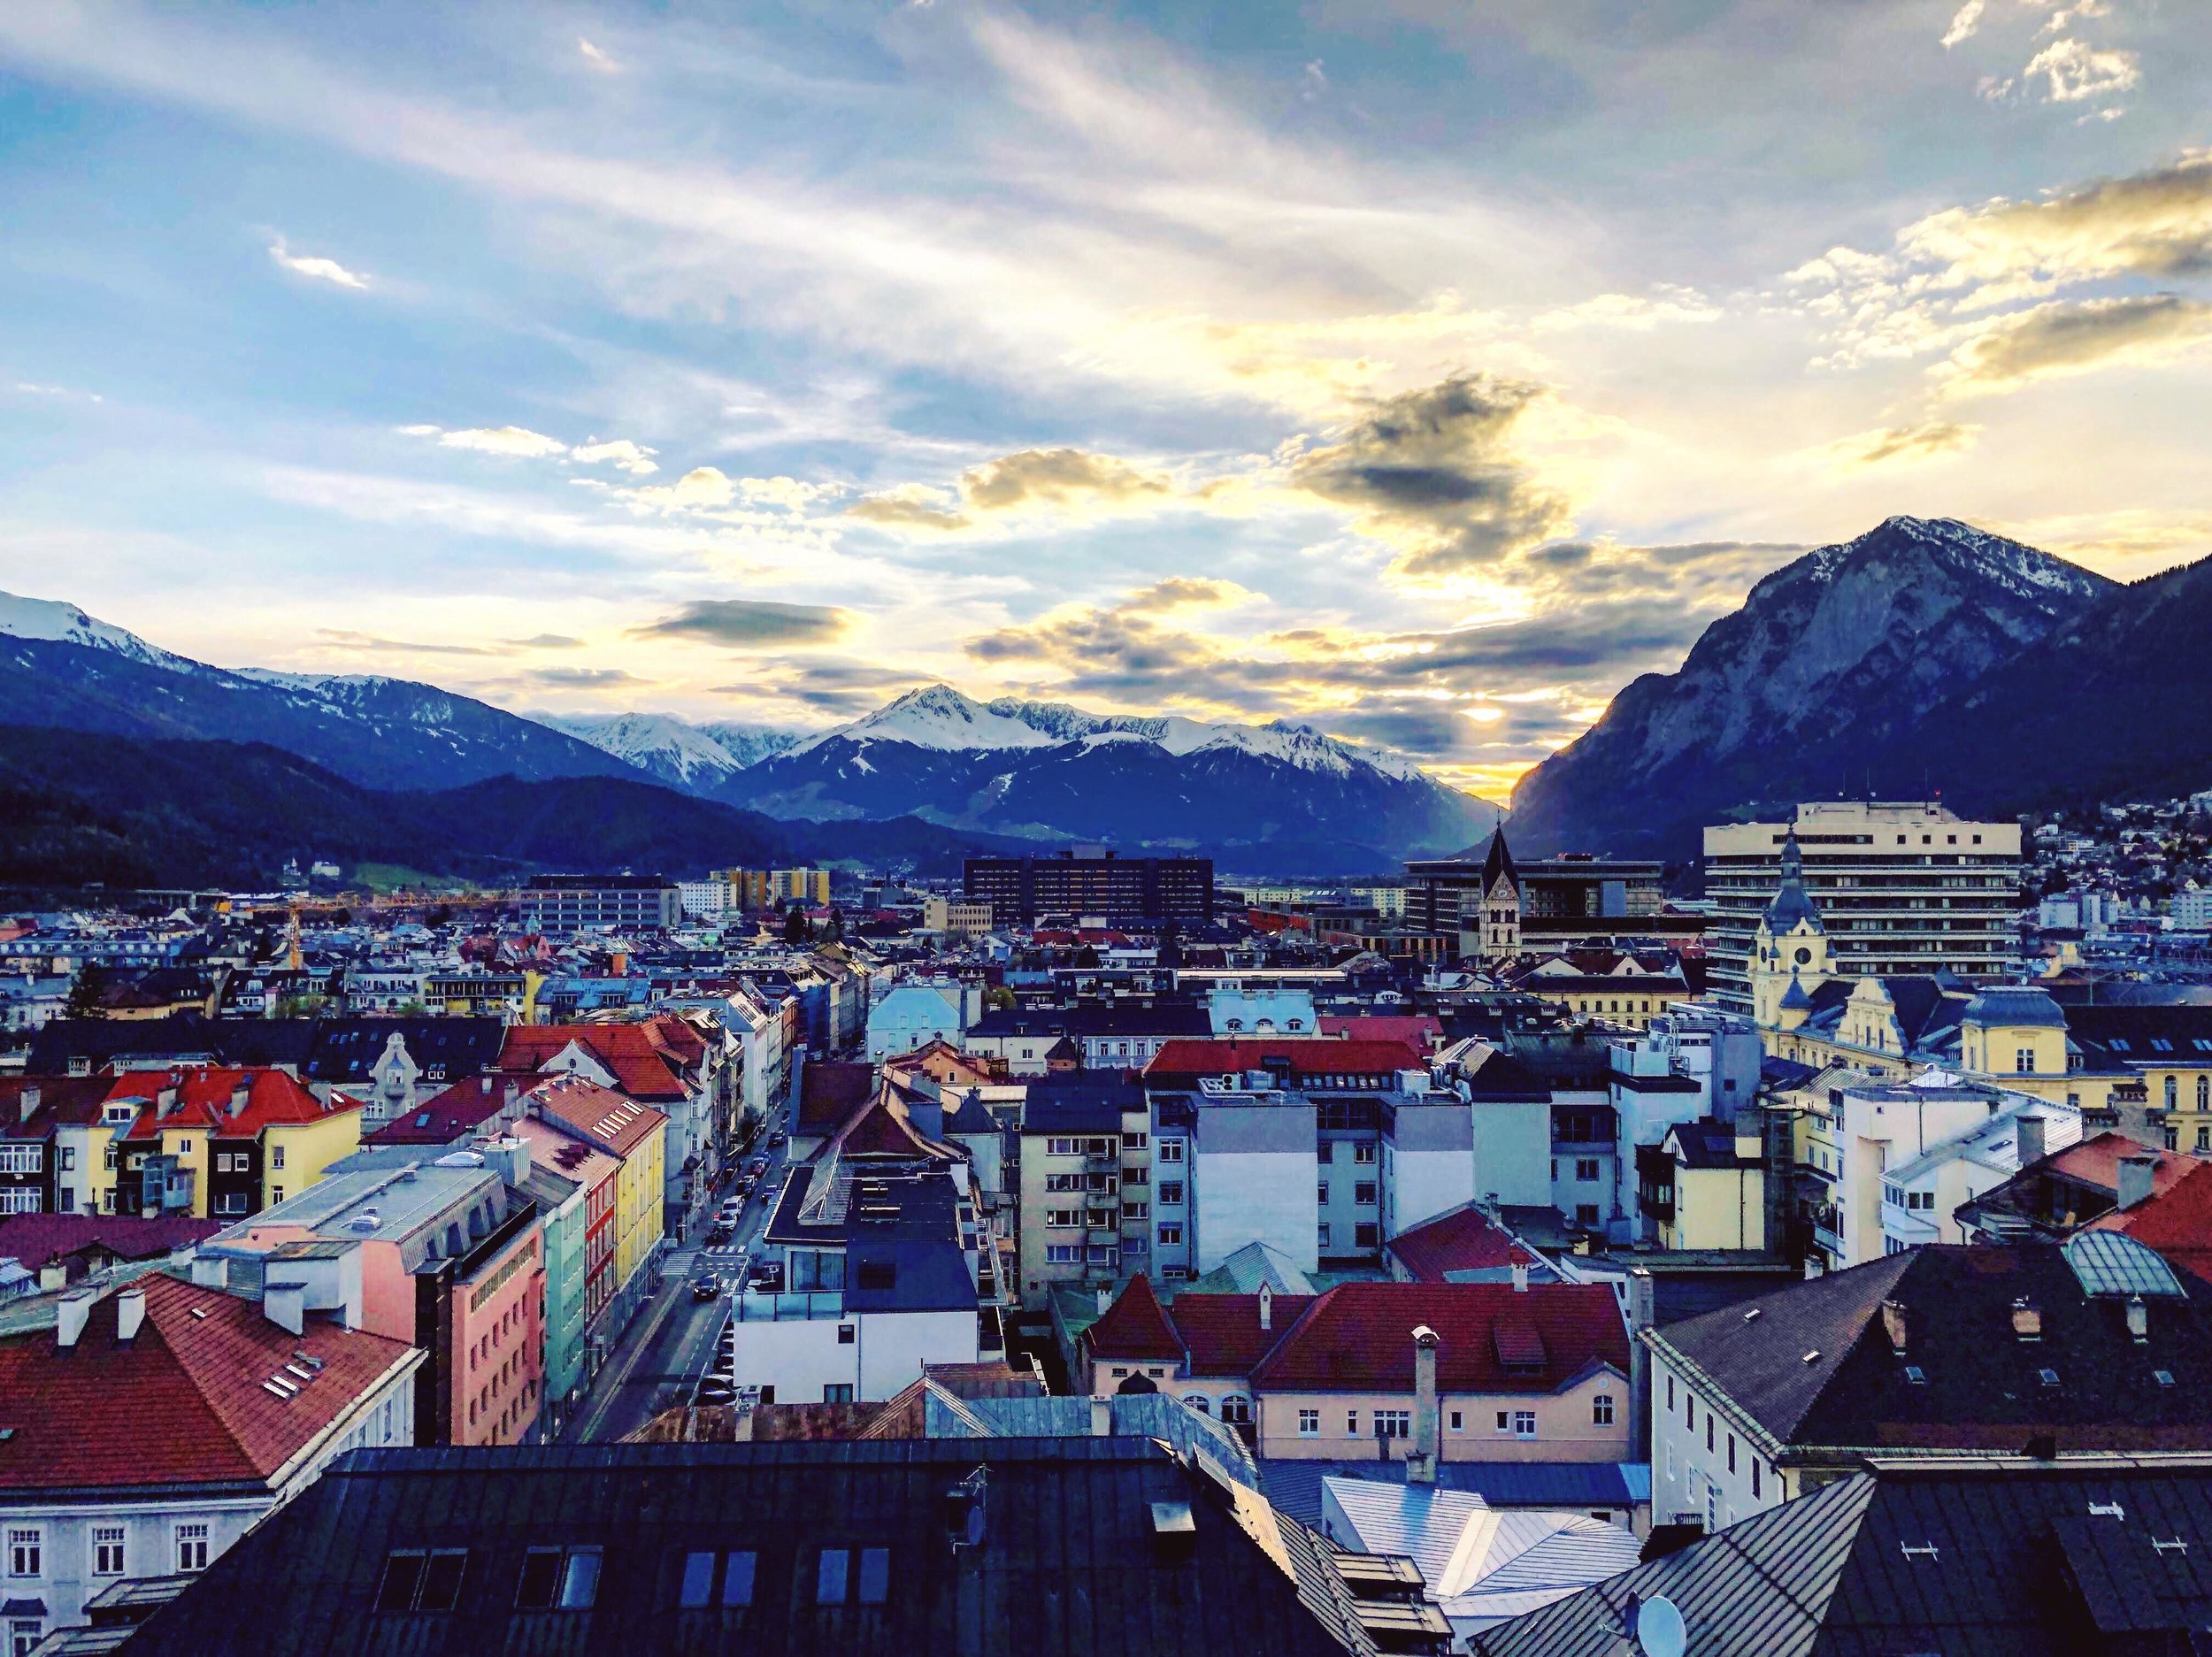 Innsbruck, Austria at sunset.jpg